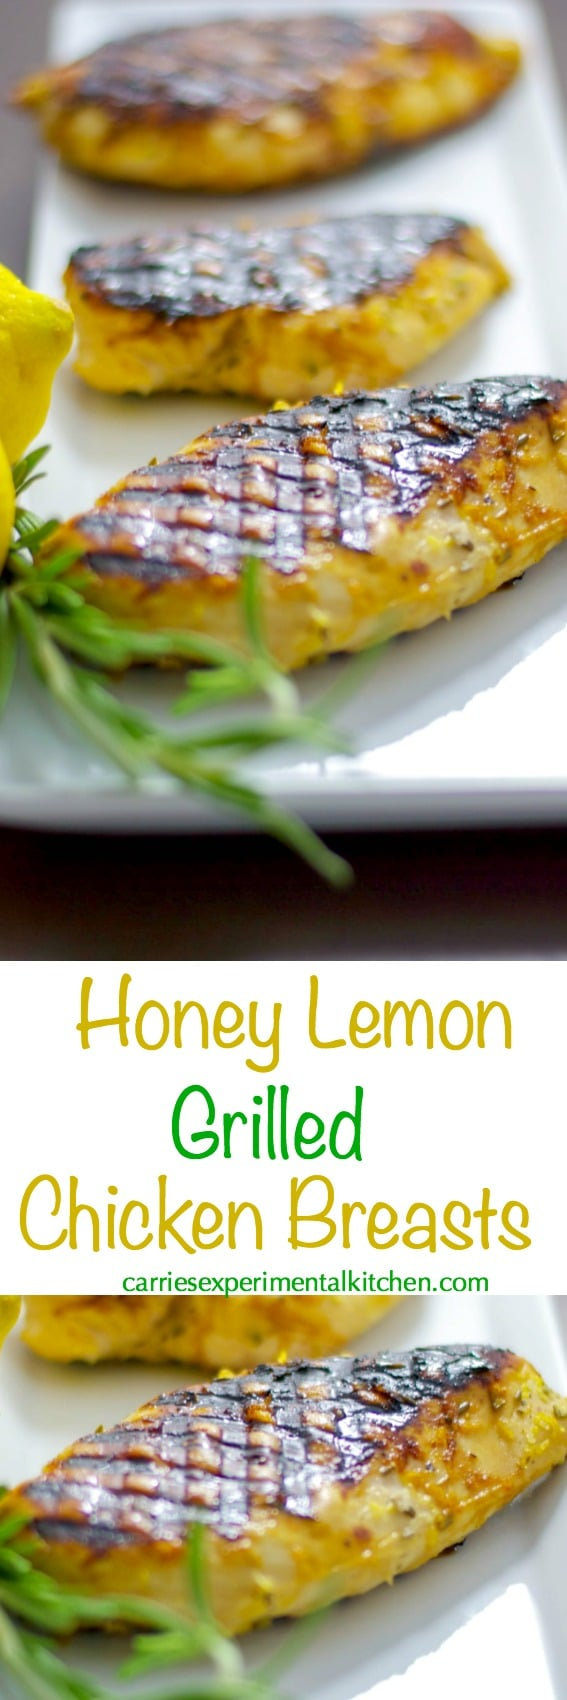 Boneless chicken breasts marinated in a combination of honey, lemon juice and rosemary; then grilled is a healthy, low fat delicious weeknight meal.#grilling #chicken #honey #lemon #lowfat #healthy